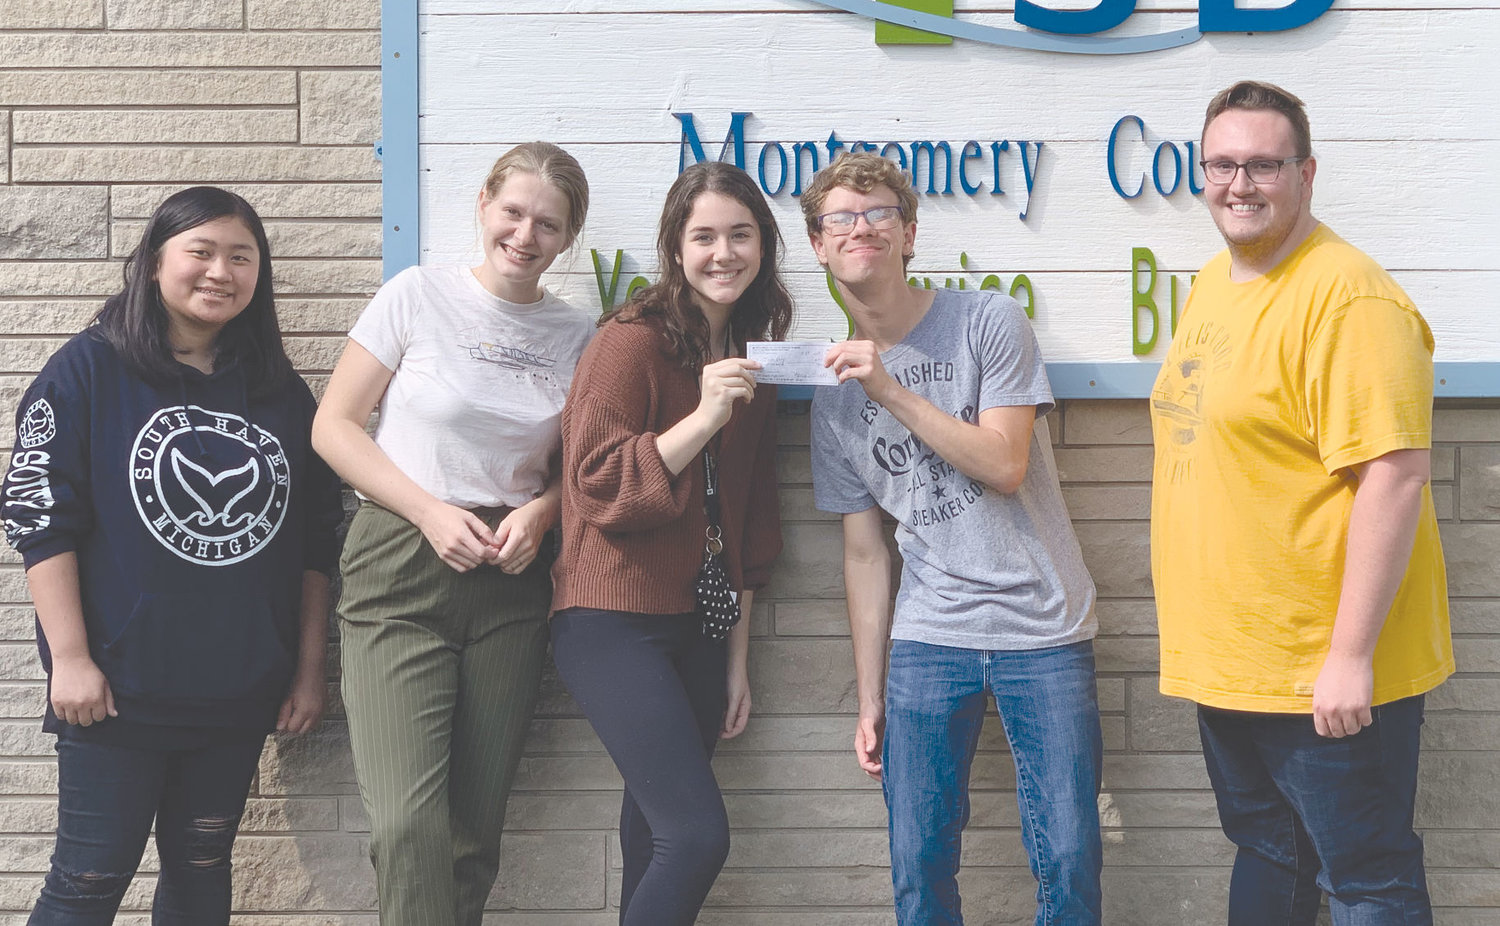 Pictured, from left, are Sully Caldwell, Faith Galbert, Delaney Gobel, Sam Doty and Cameron Cole, a Youth Service Bureau staff member.